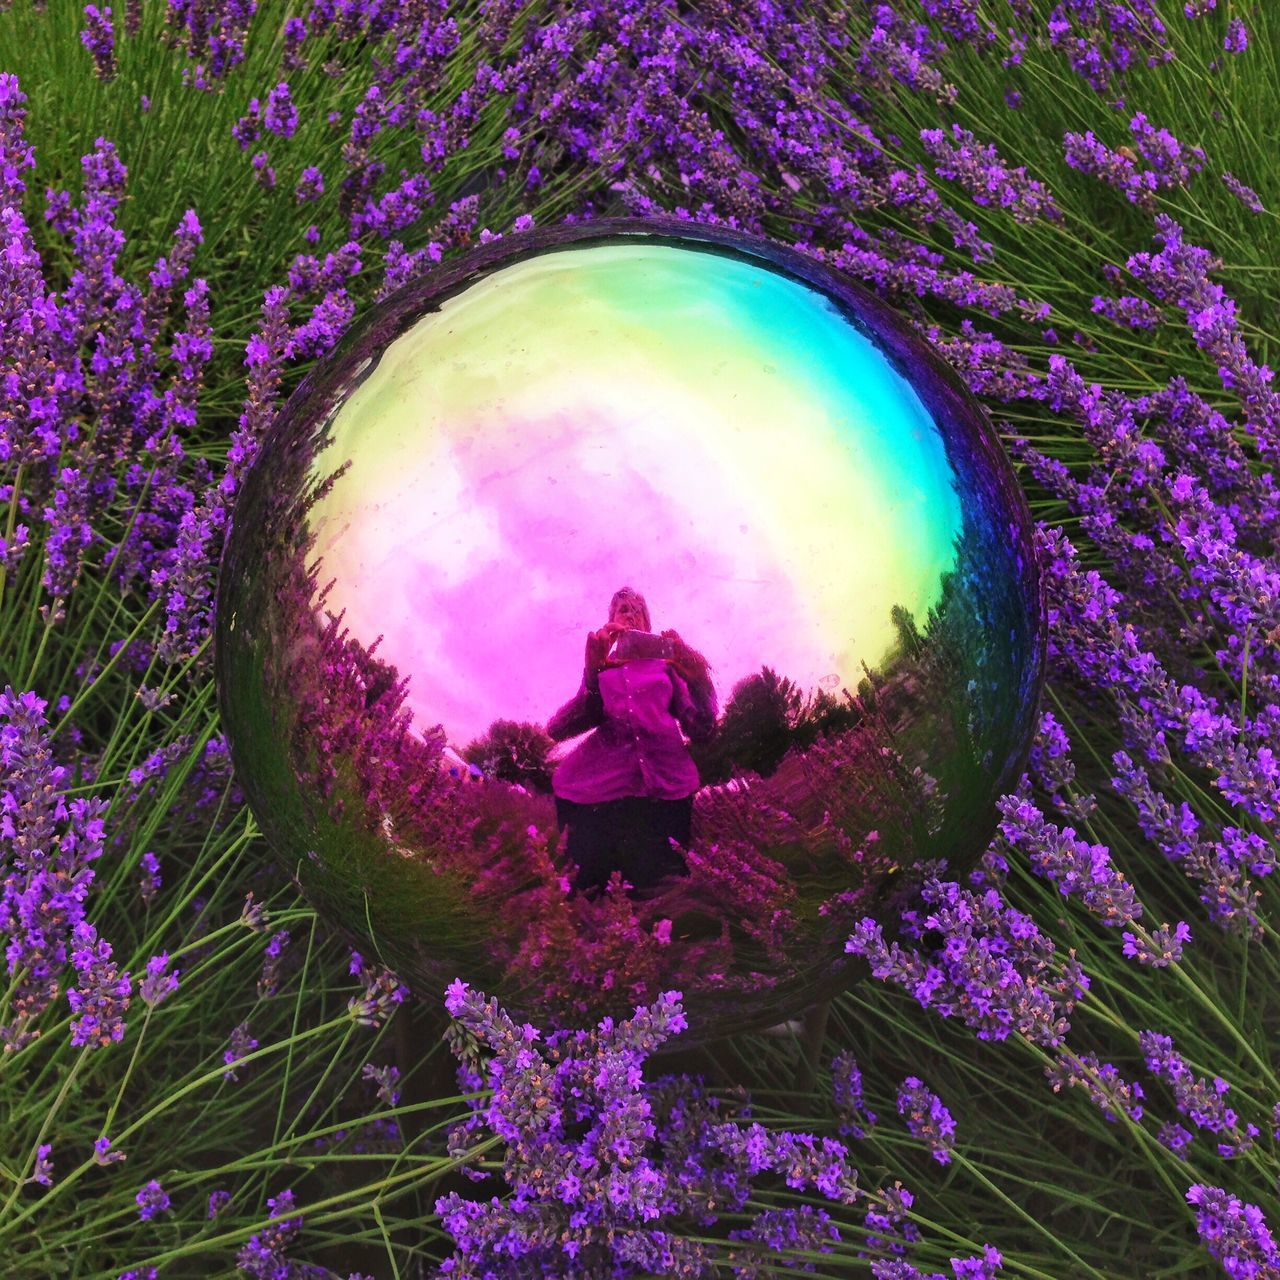 IPhoneography Lavendar Lavendar Flowers Garden Globe Garden Reflection Psychedelic Psychedelic_colors